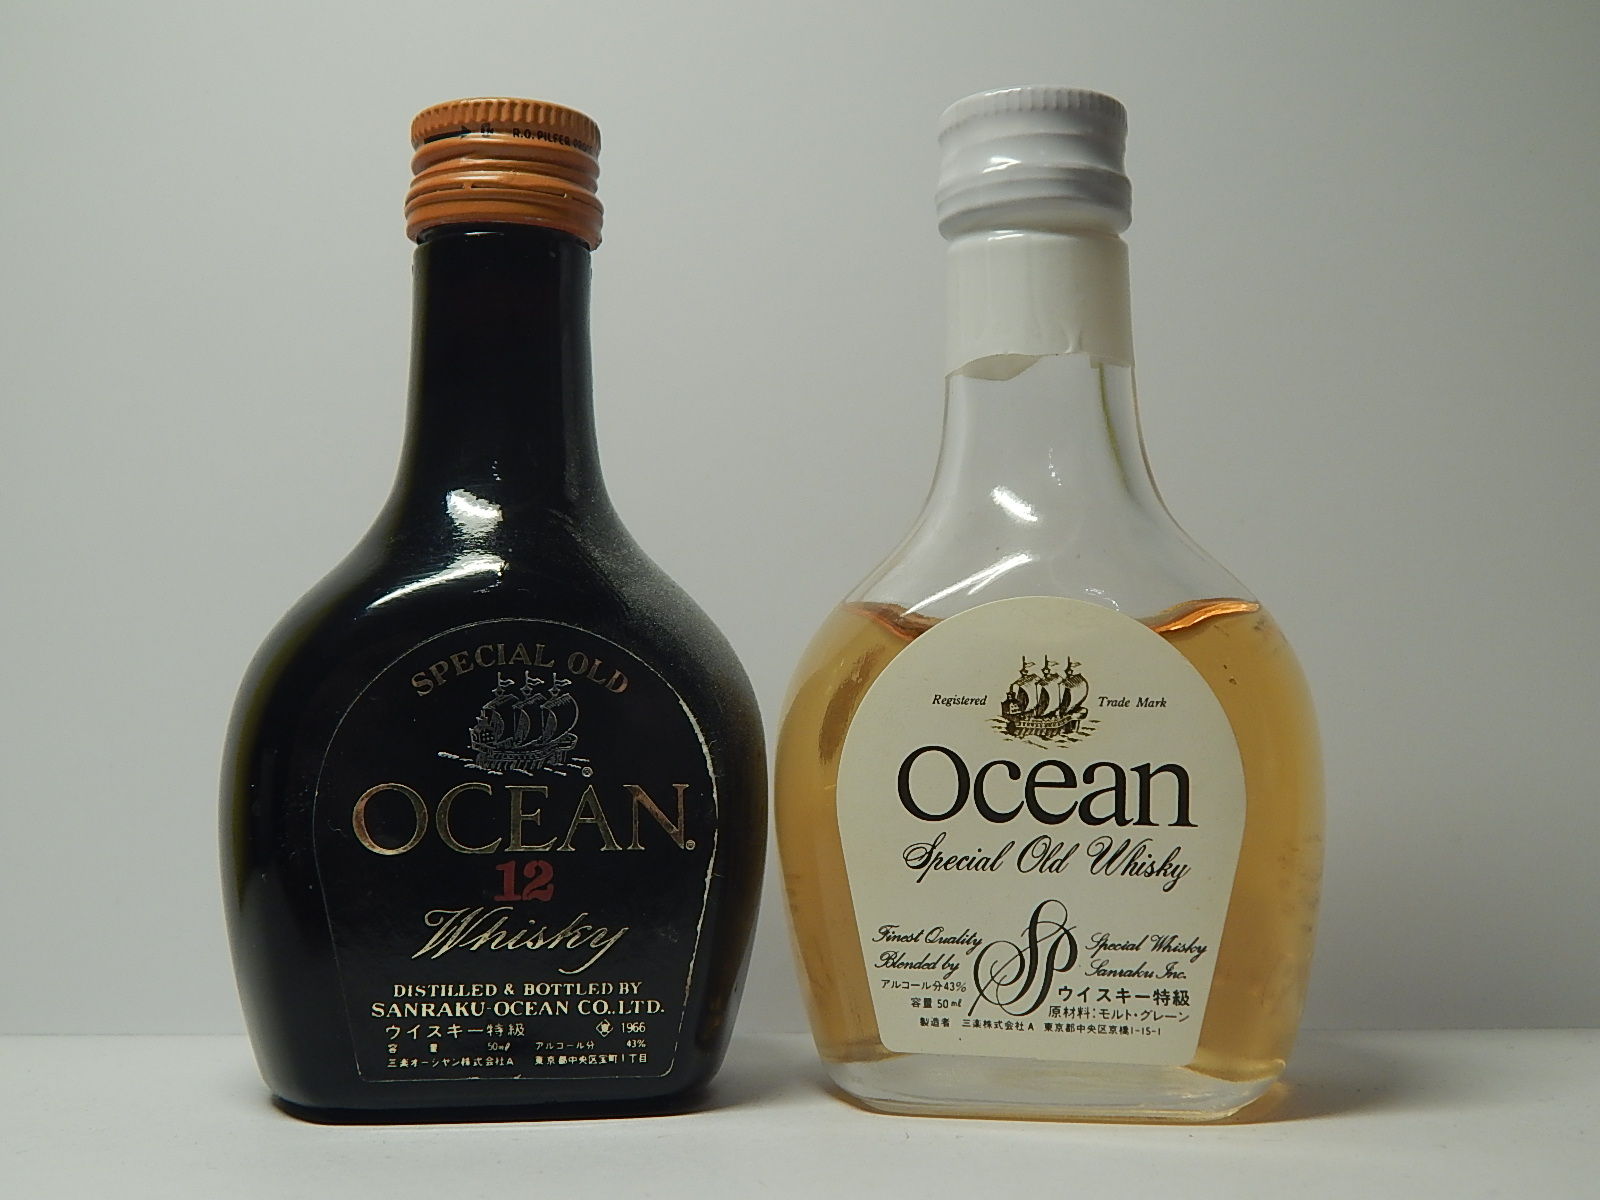 OCEAN 12yo - Special Japan Whisky